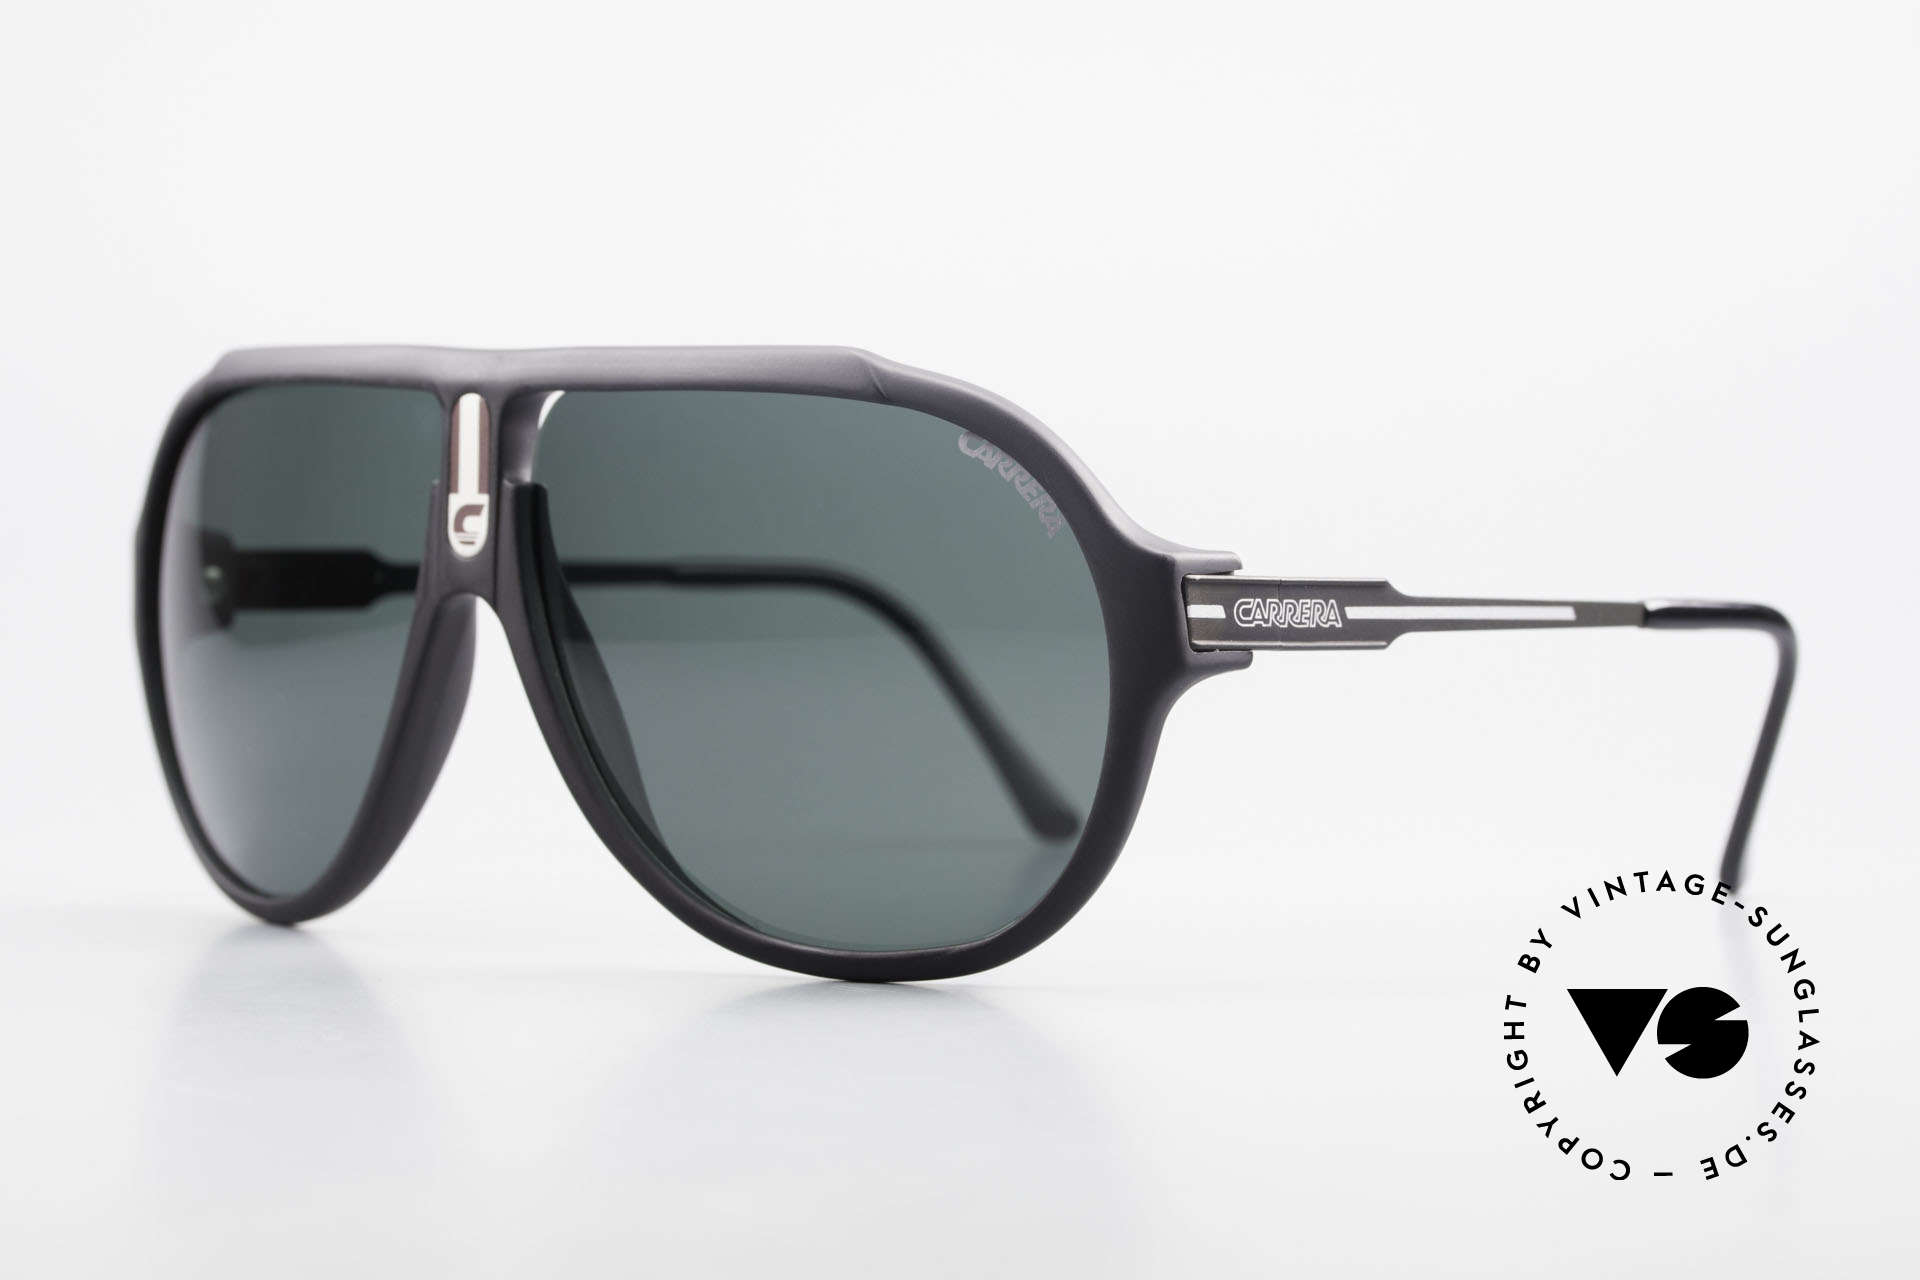 Carrera 5565 Old 1980's Vintage Sunglasses, everlasting Optyl-frame still shines like just produced, Made for Men and Women